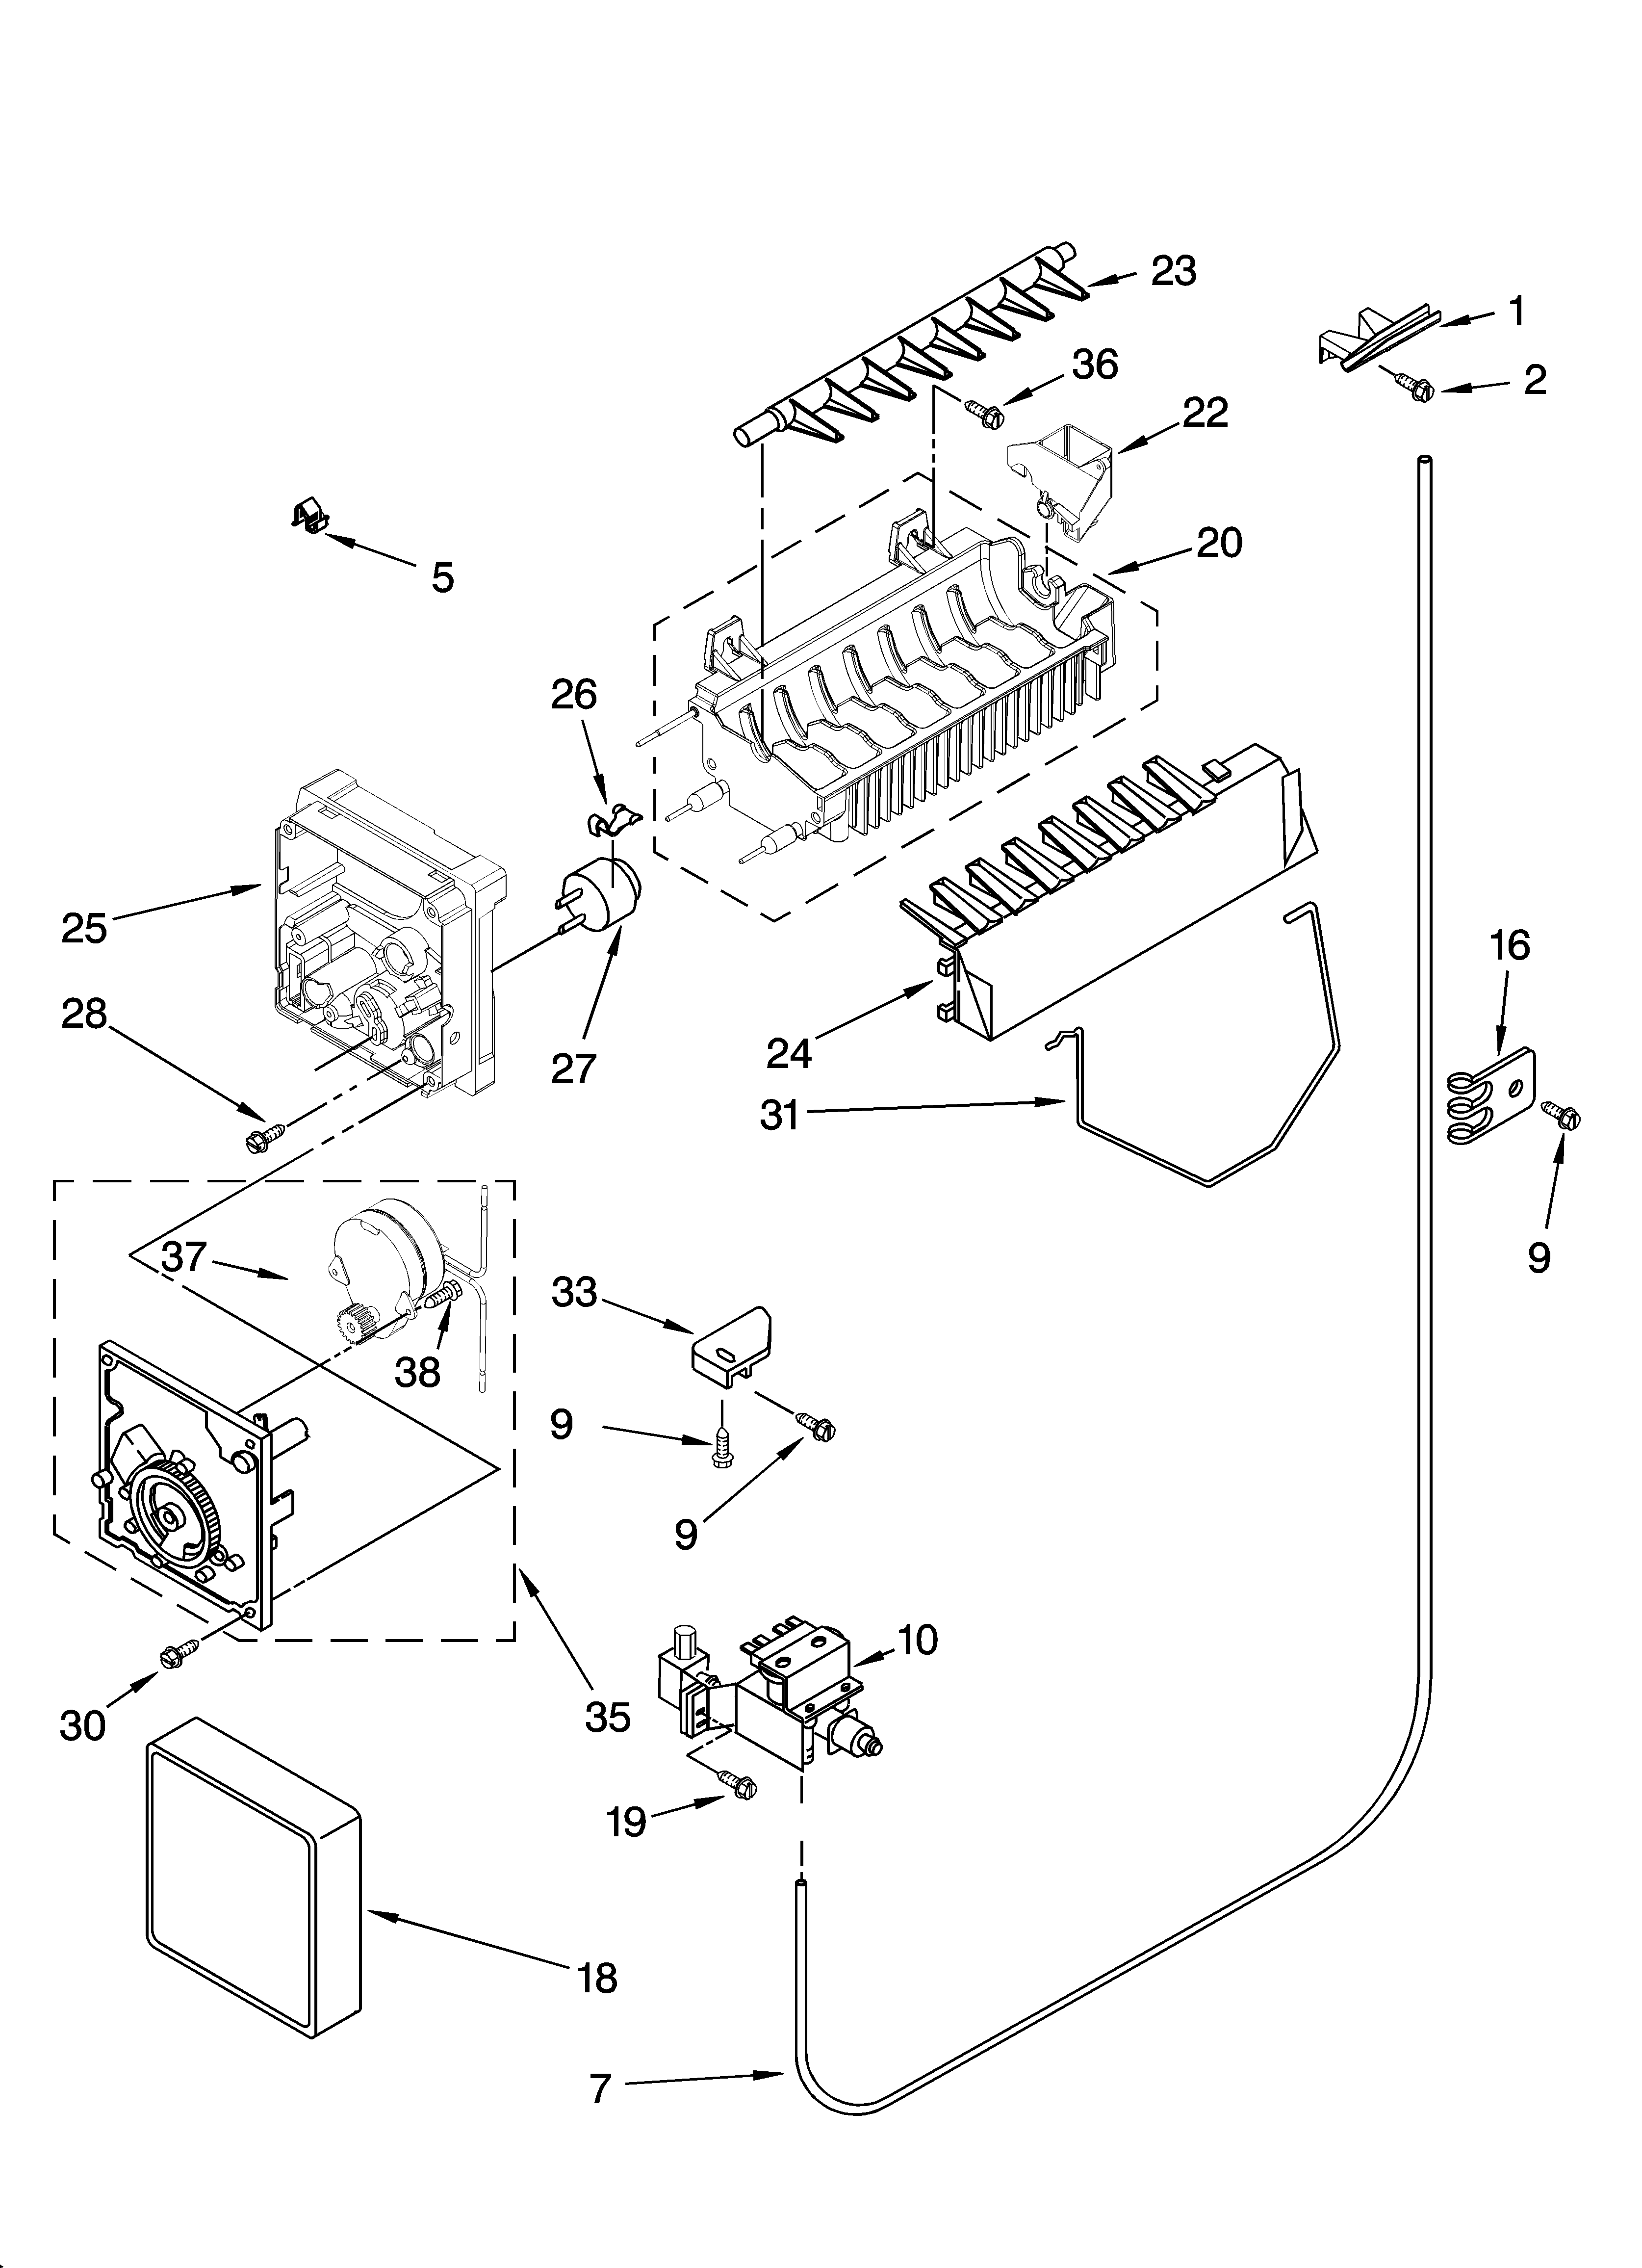 Kenmore 10656986601 icemaker parts, optional parts (not included) diagram